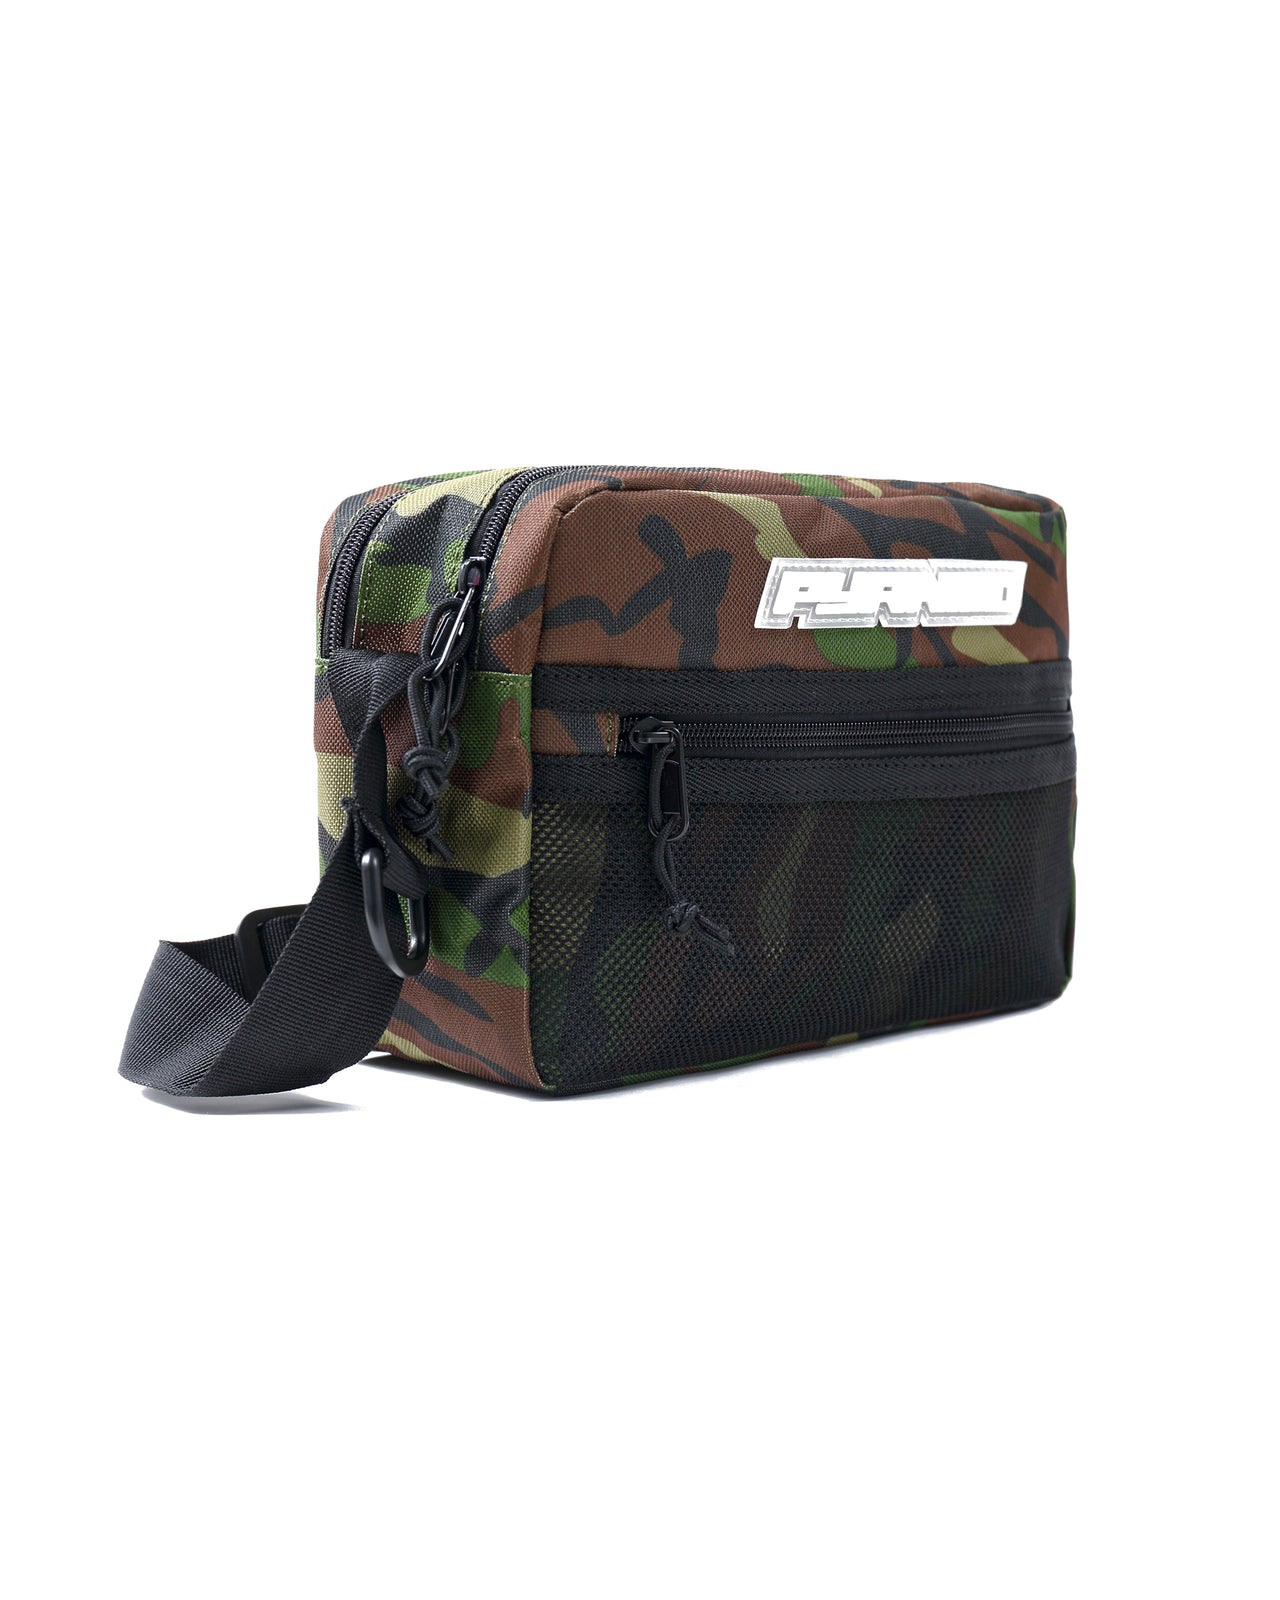 MEDIUM TECH SHOULDER BAG - Color: CAMO